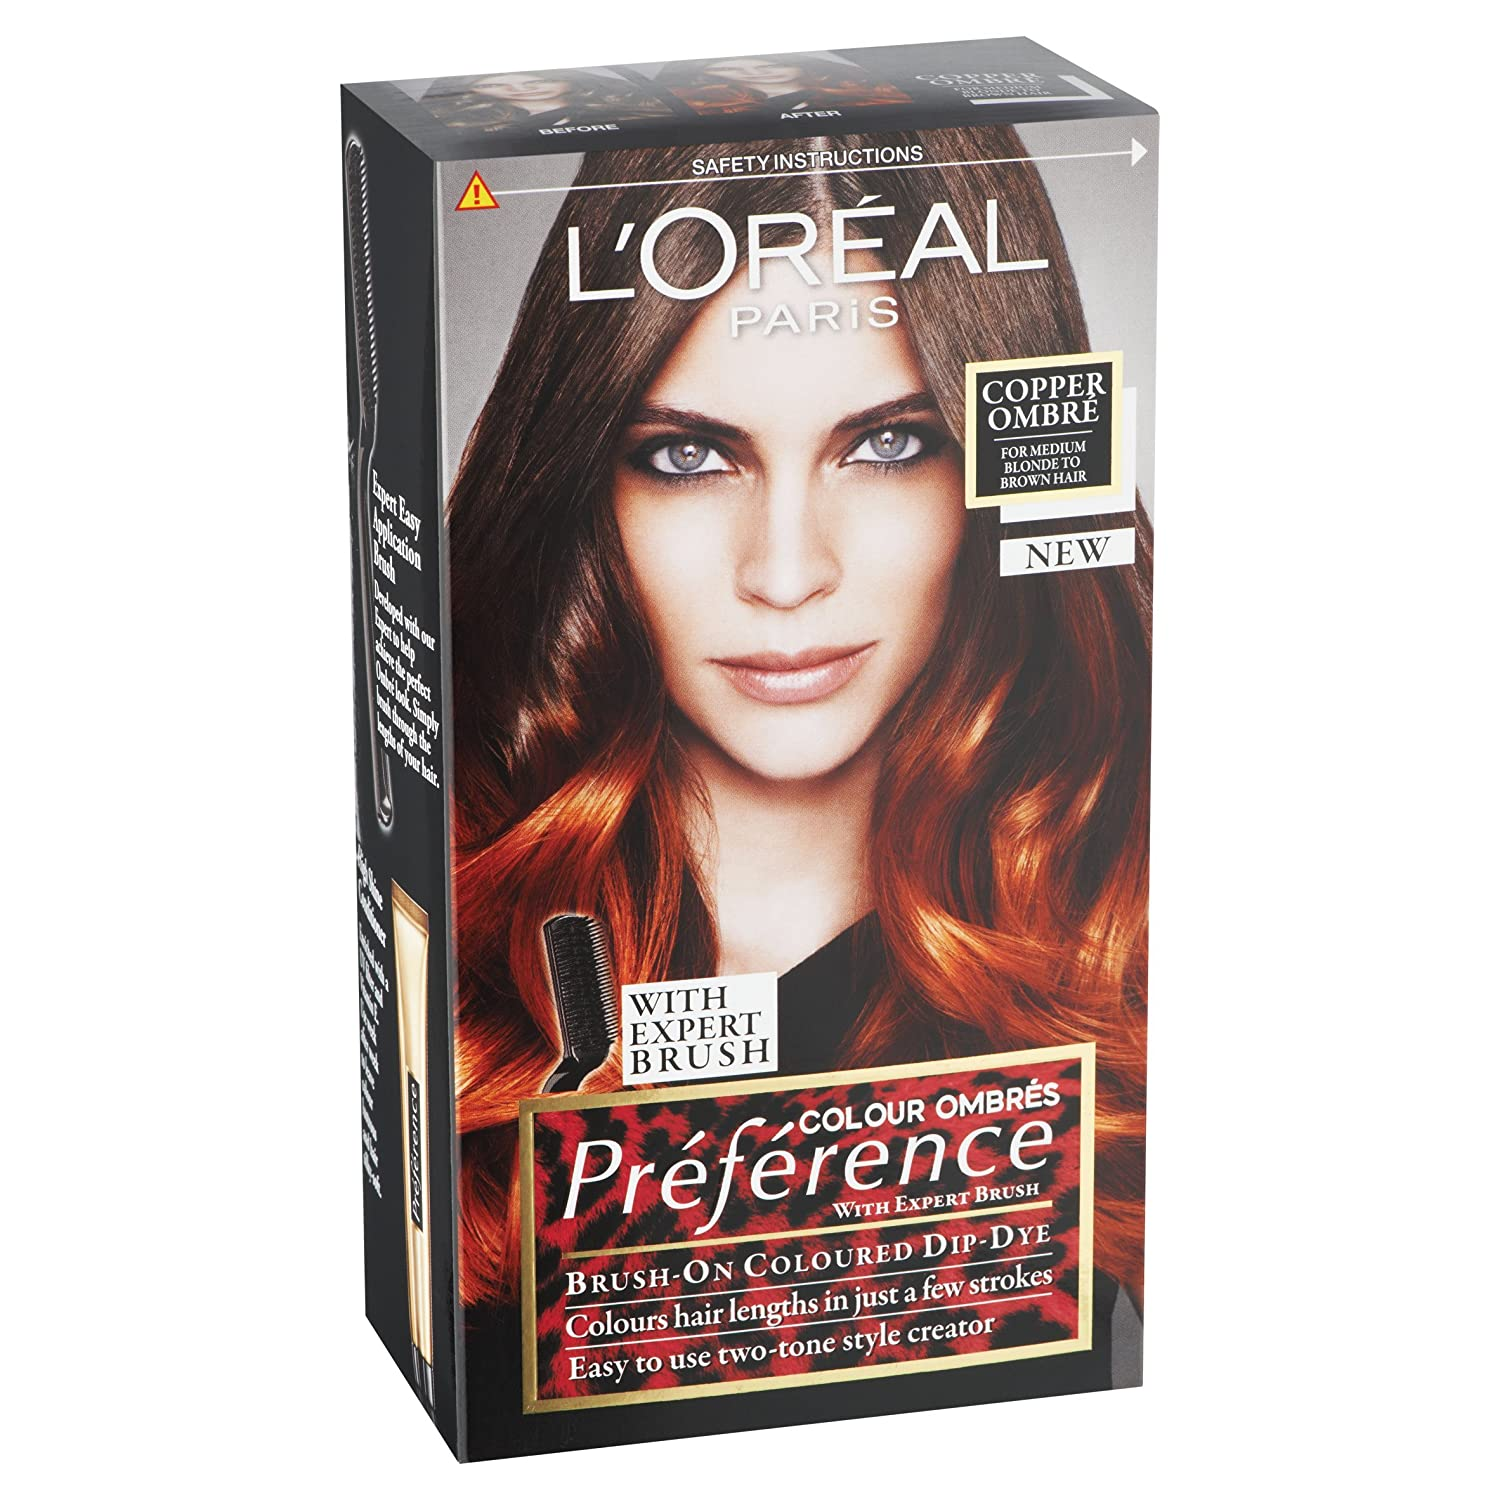 Loreal Preference Infinia 91 Viking Light Ash Blonde Hair Dye L